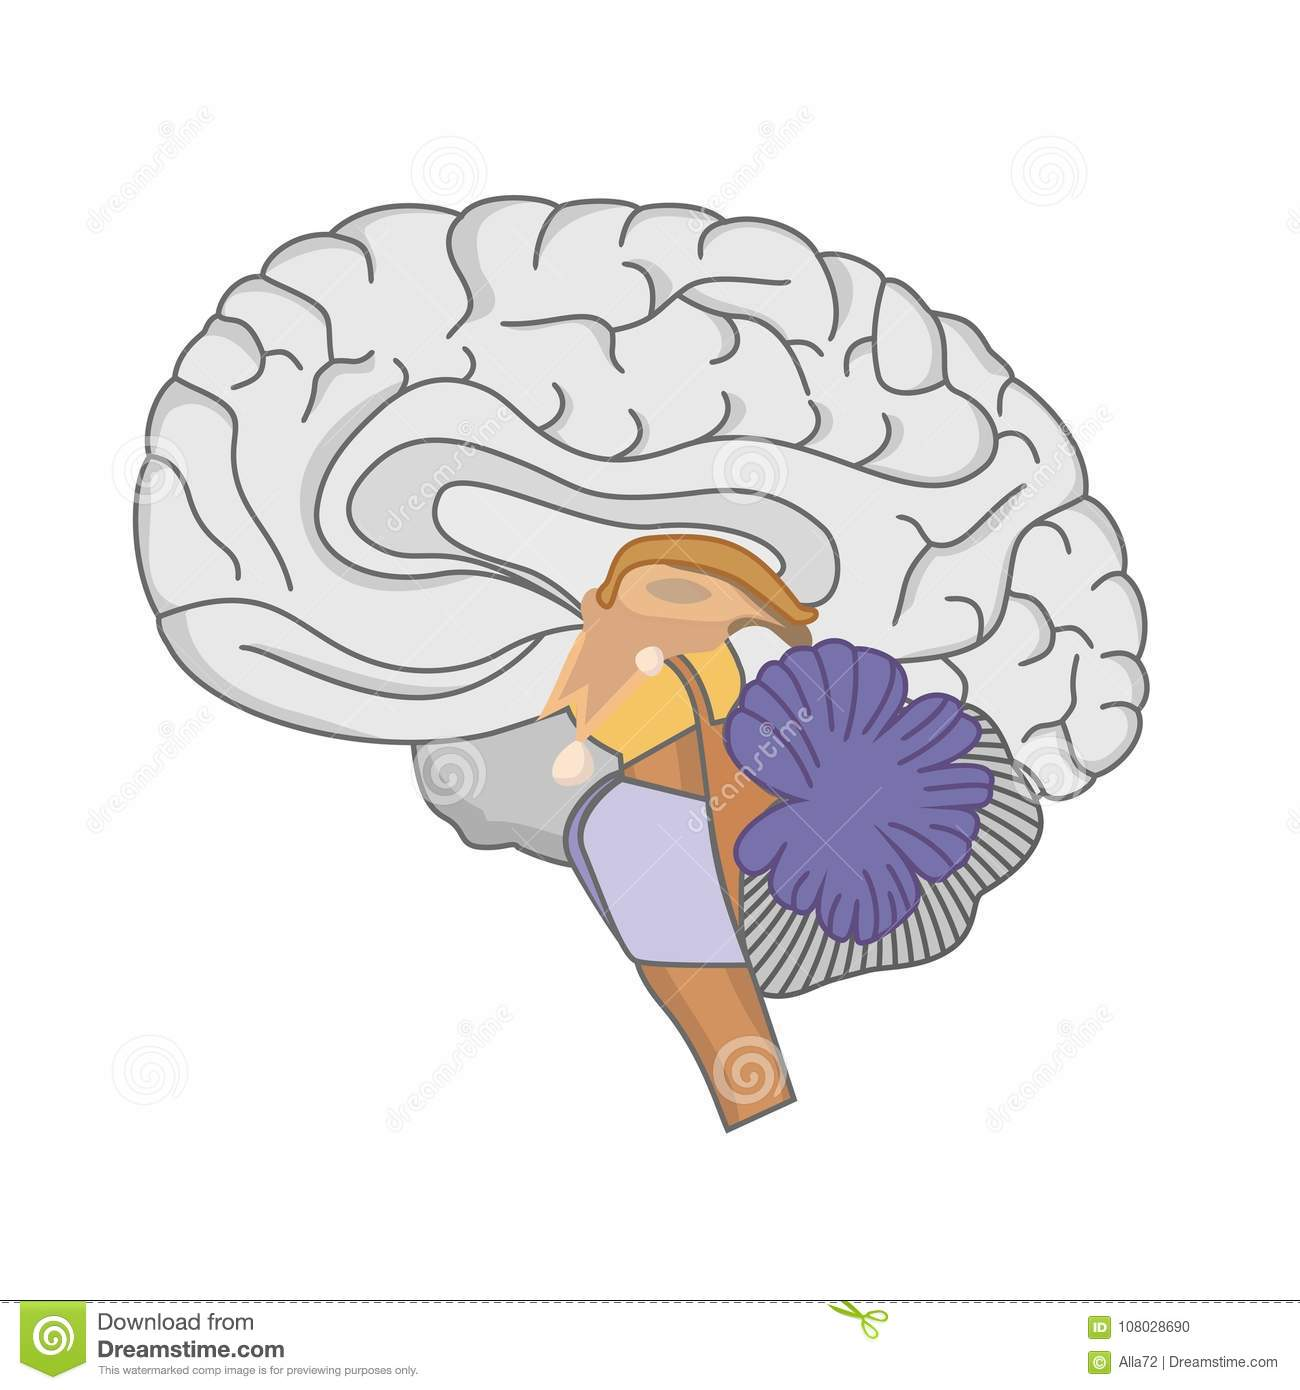 Human Brain Anatomy Human Brain On White Background Stock Vector